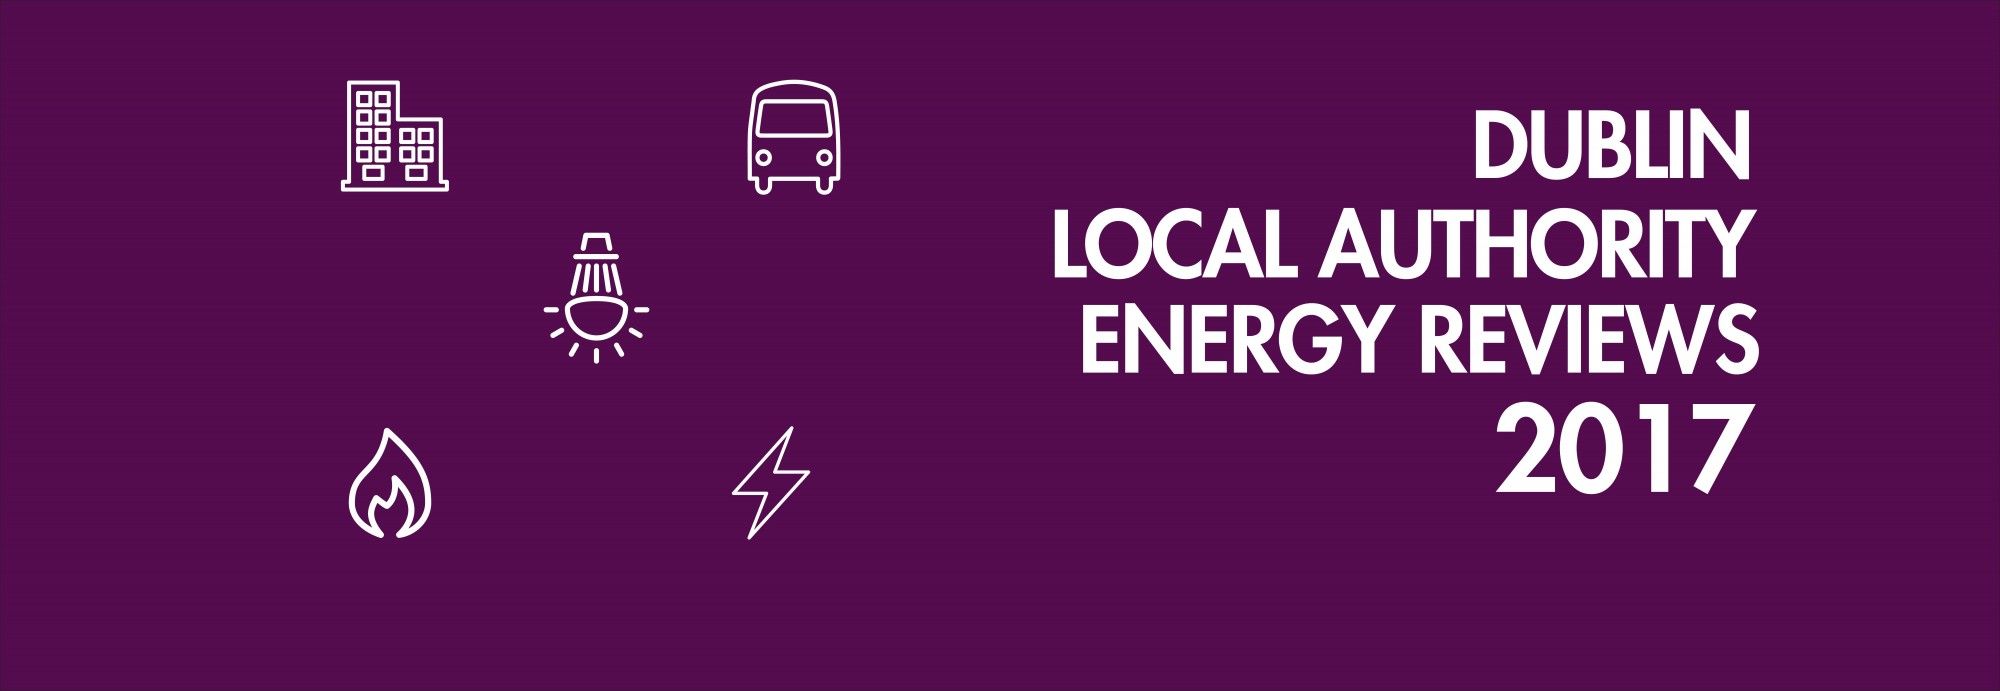 Dublin Local Authority Energy Reviews 2017